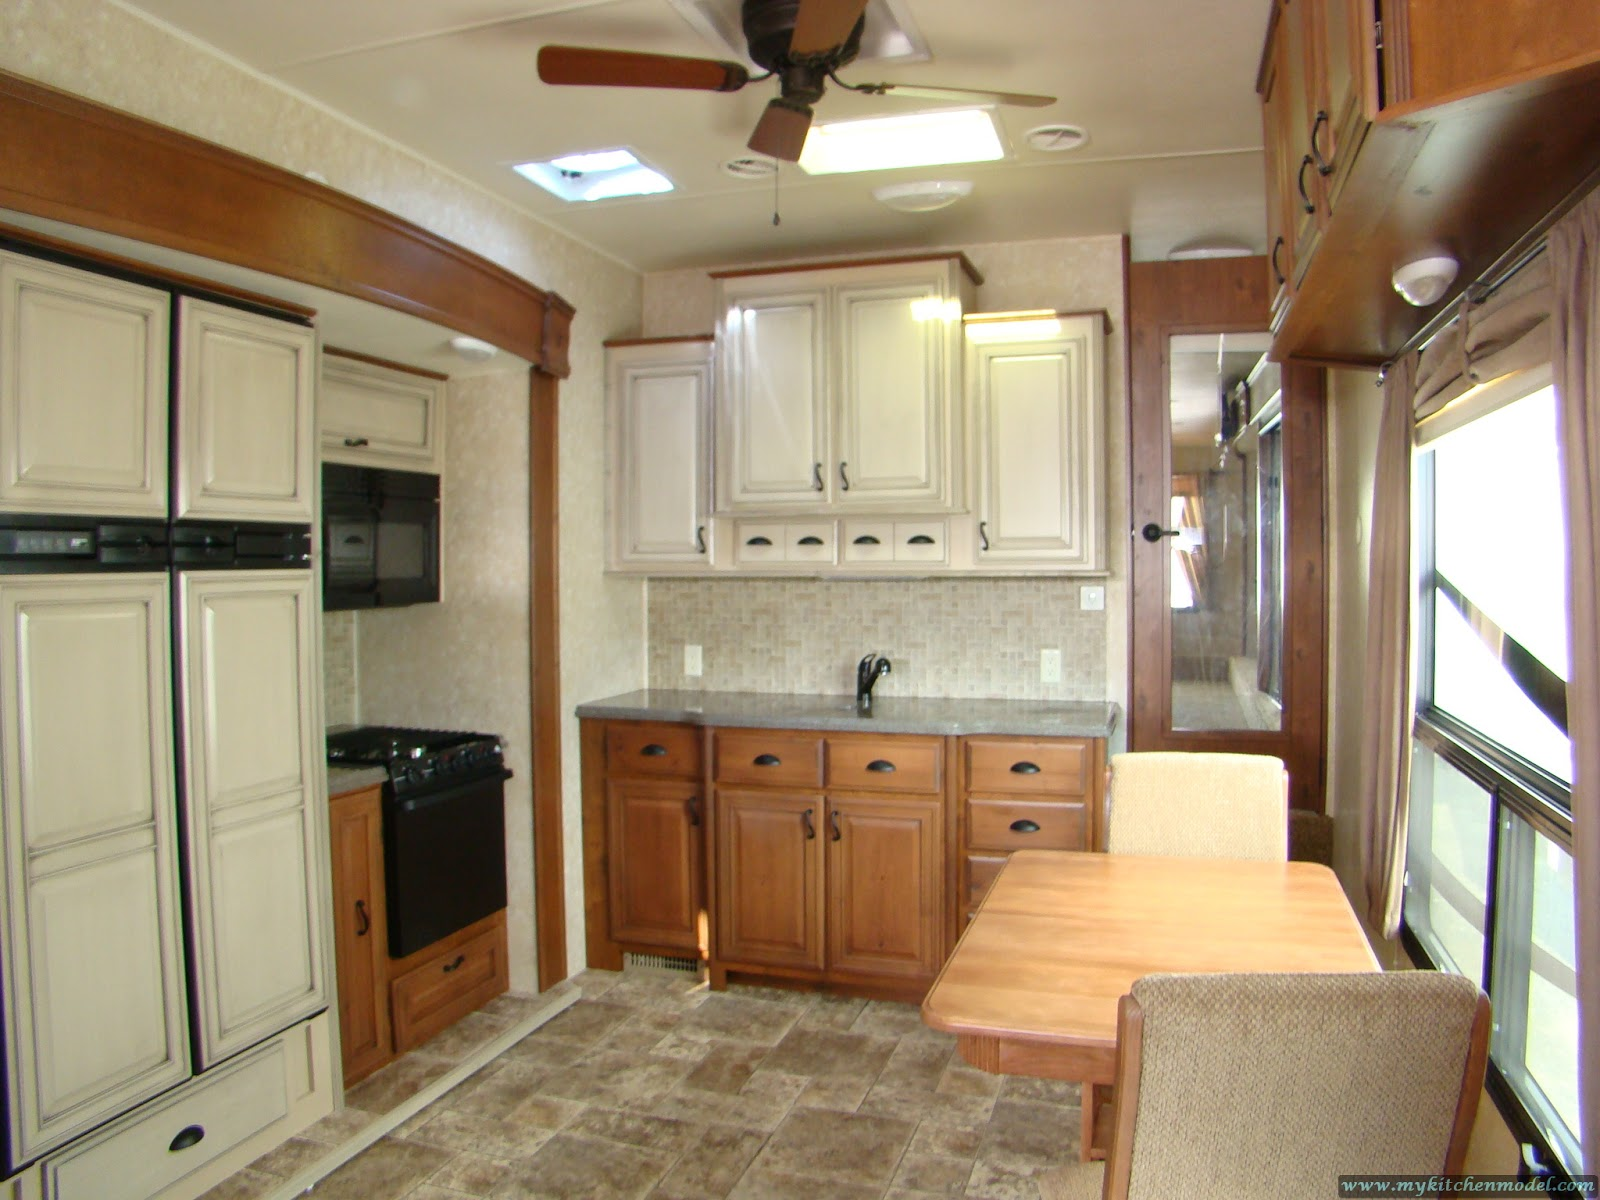 front your outdoor modern ideas tesla slideout best on room bunkhouse bathrooms eagle with bath makeover kitchen loft and living cer models official full plans wheel toy perfect trailer new rv for travel floor fifth jayco quad bedroom